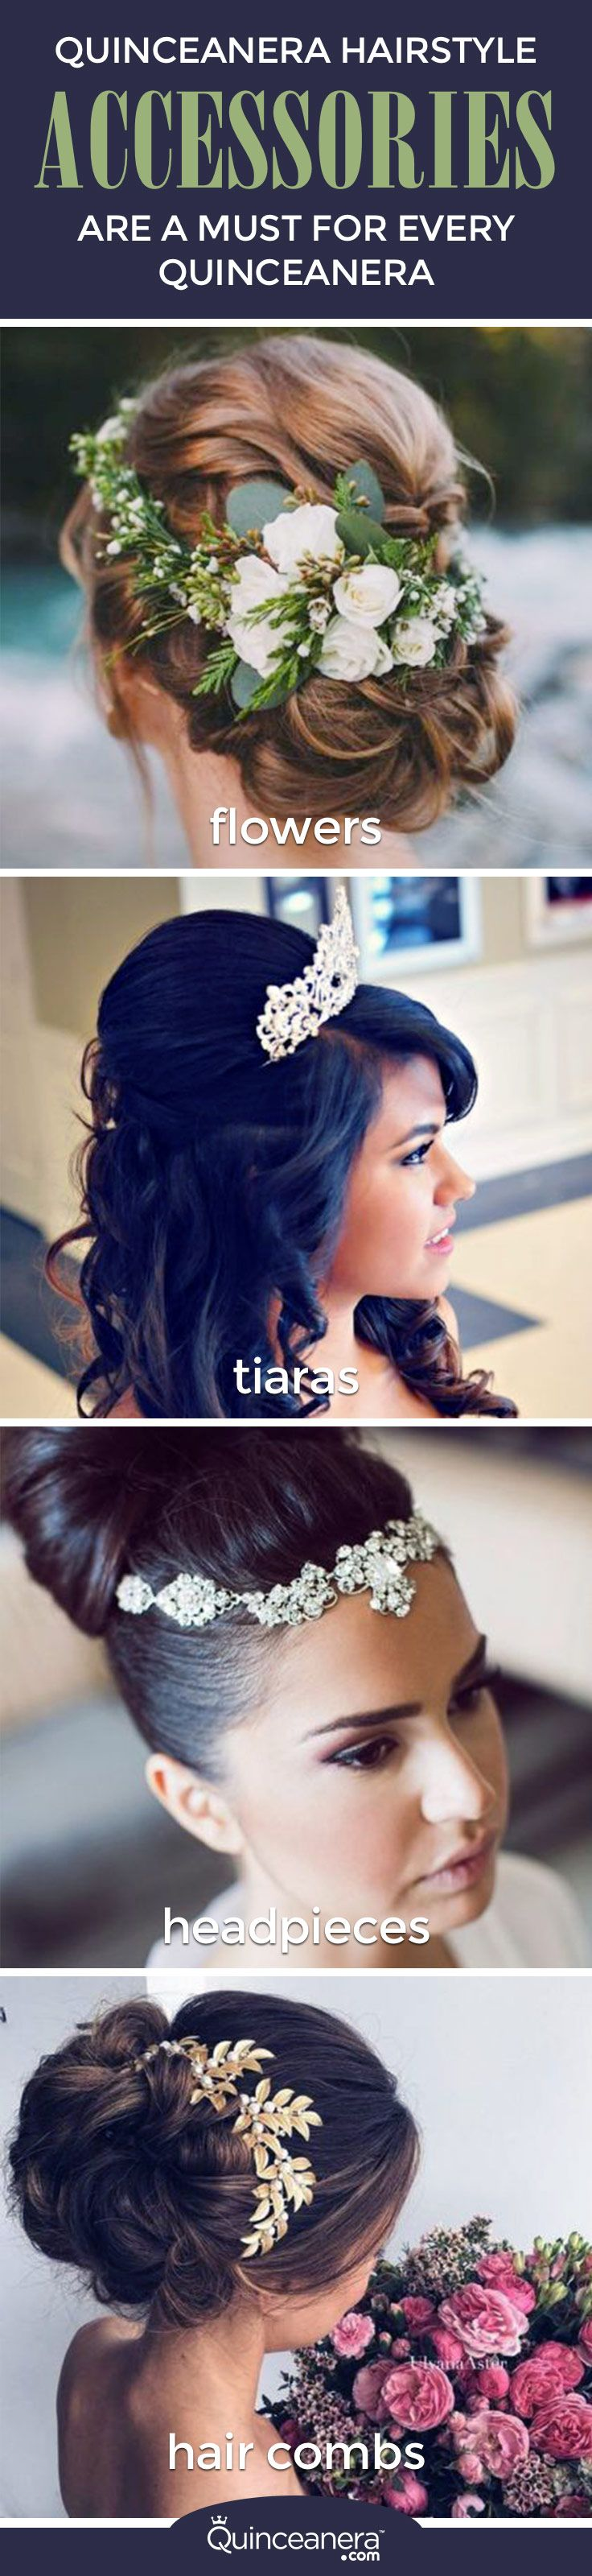 You'll soon learn that wearing hair accessories has become a must for every quinceanera! Find the hairstyles and hair accessories that scream YOU.